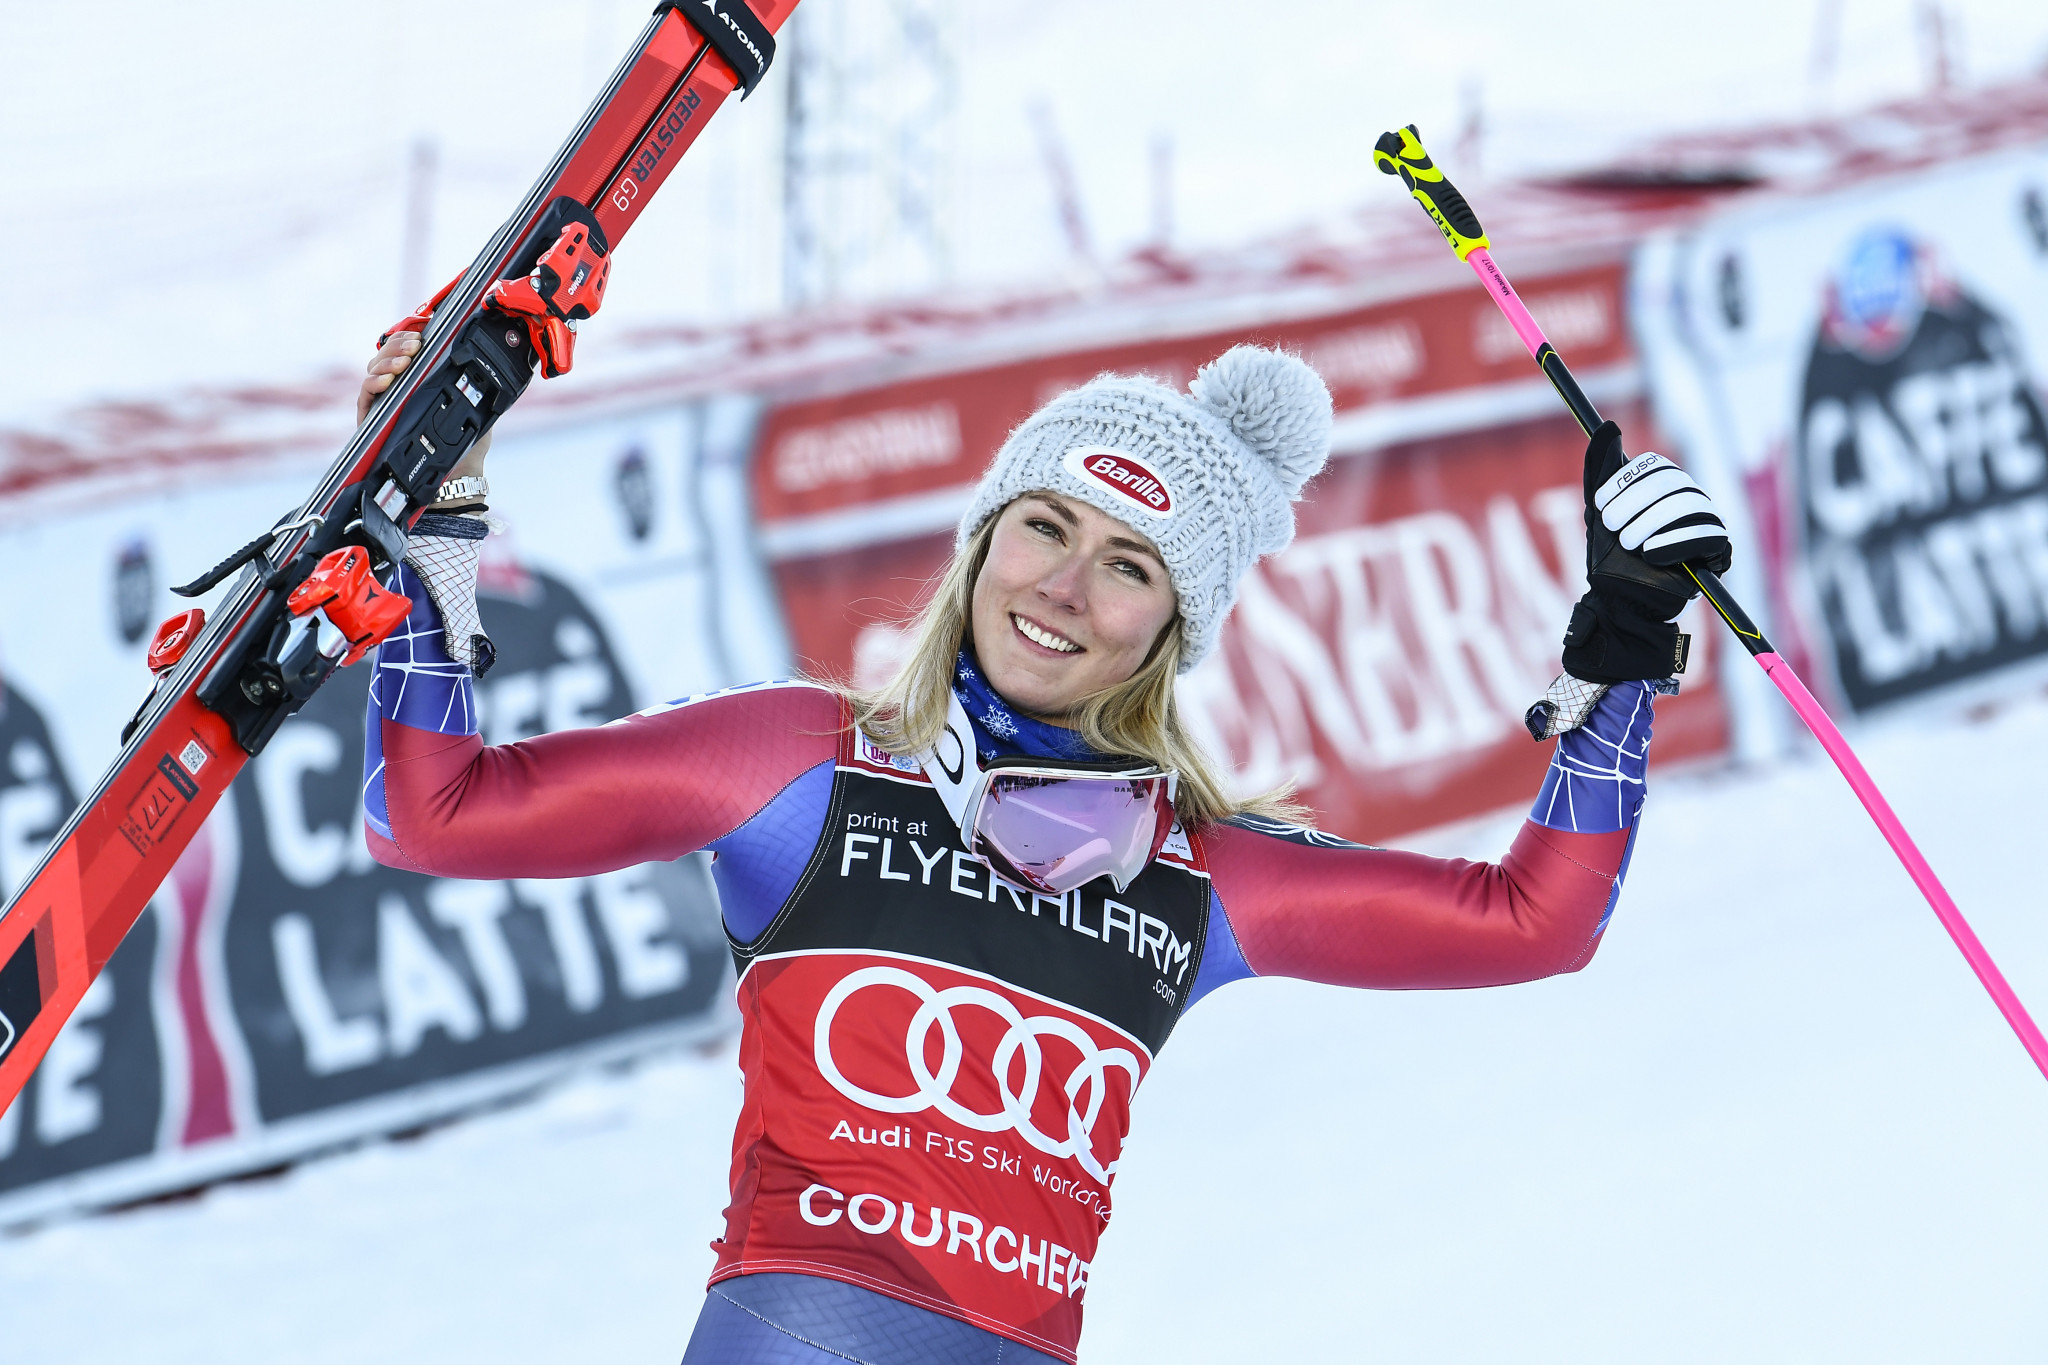 Shiffrin solidifies World Cup lead with giant slalom victory